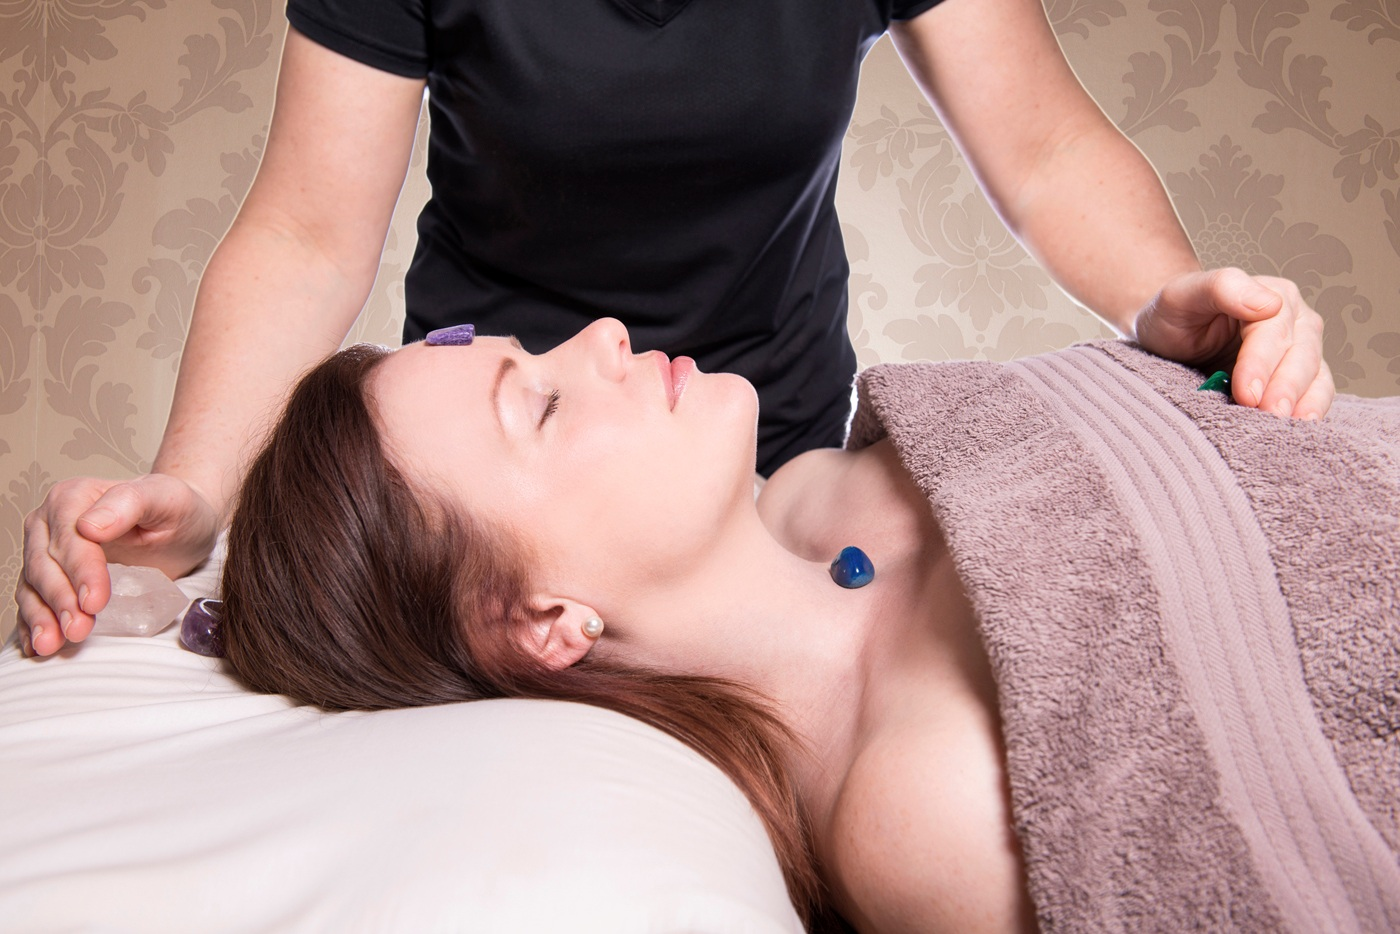 Reiki Share - A fun & lighthearted group to support your Reiki connection. Join us on the first Tuesday evening of every month . This evening is open to anyone who is attuned to Reiki and wishes to reconnect, strengthen or deepen their practice.